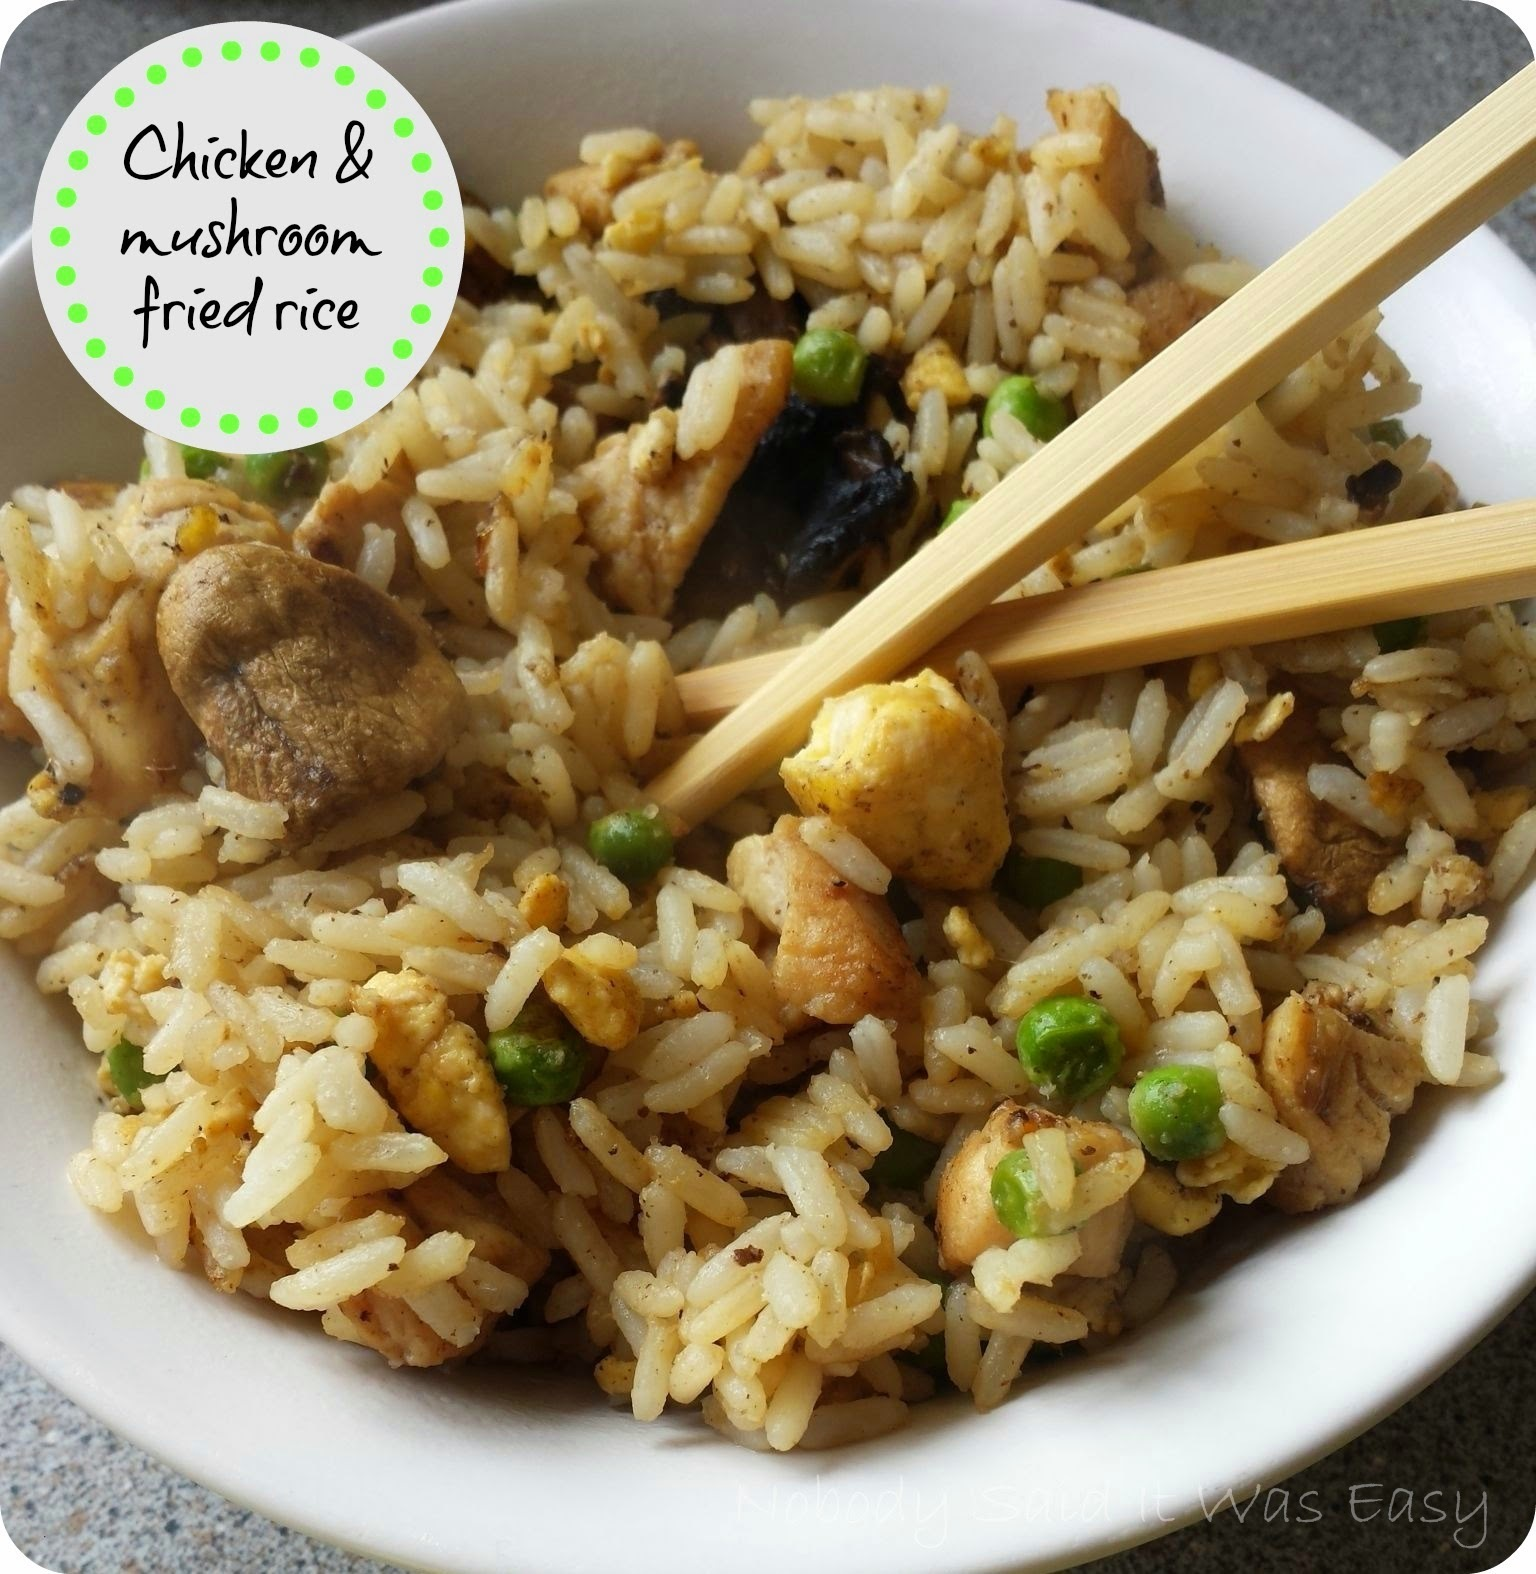 Recipe - Chicken & mushroom fried rice